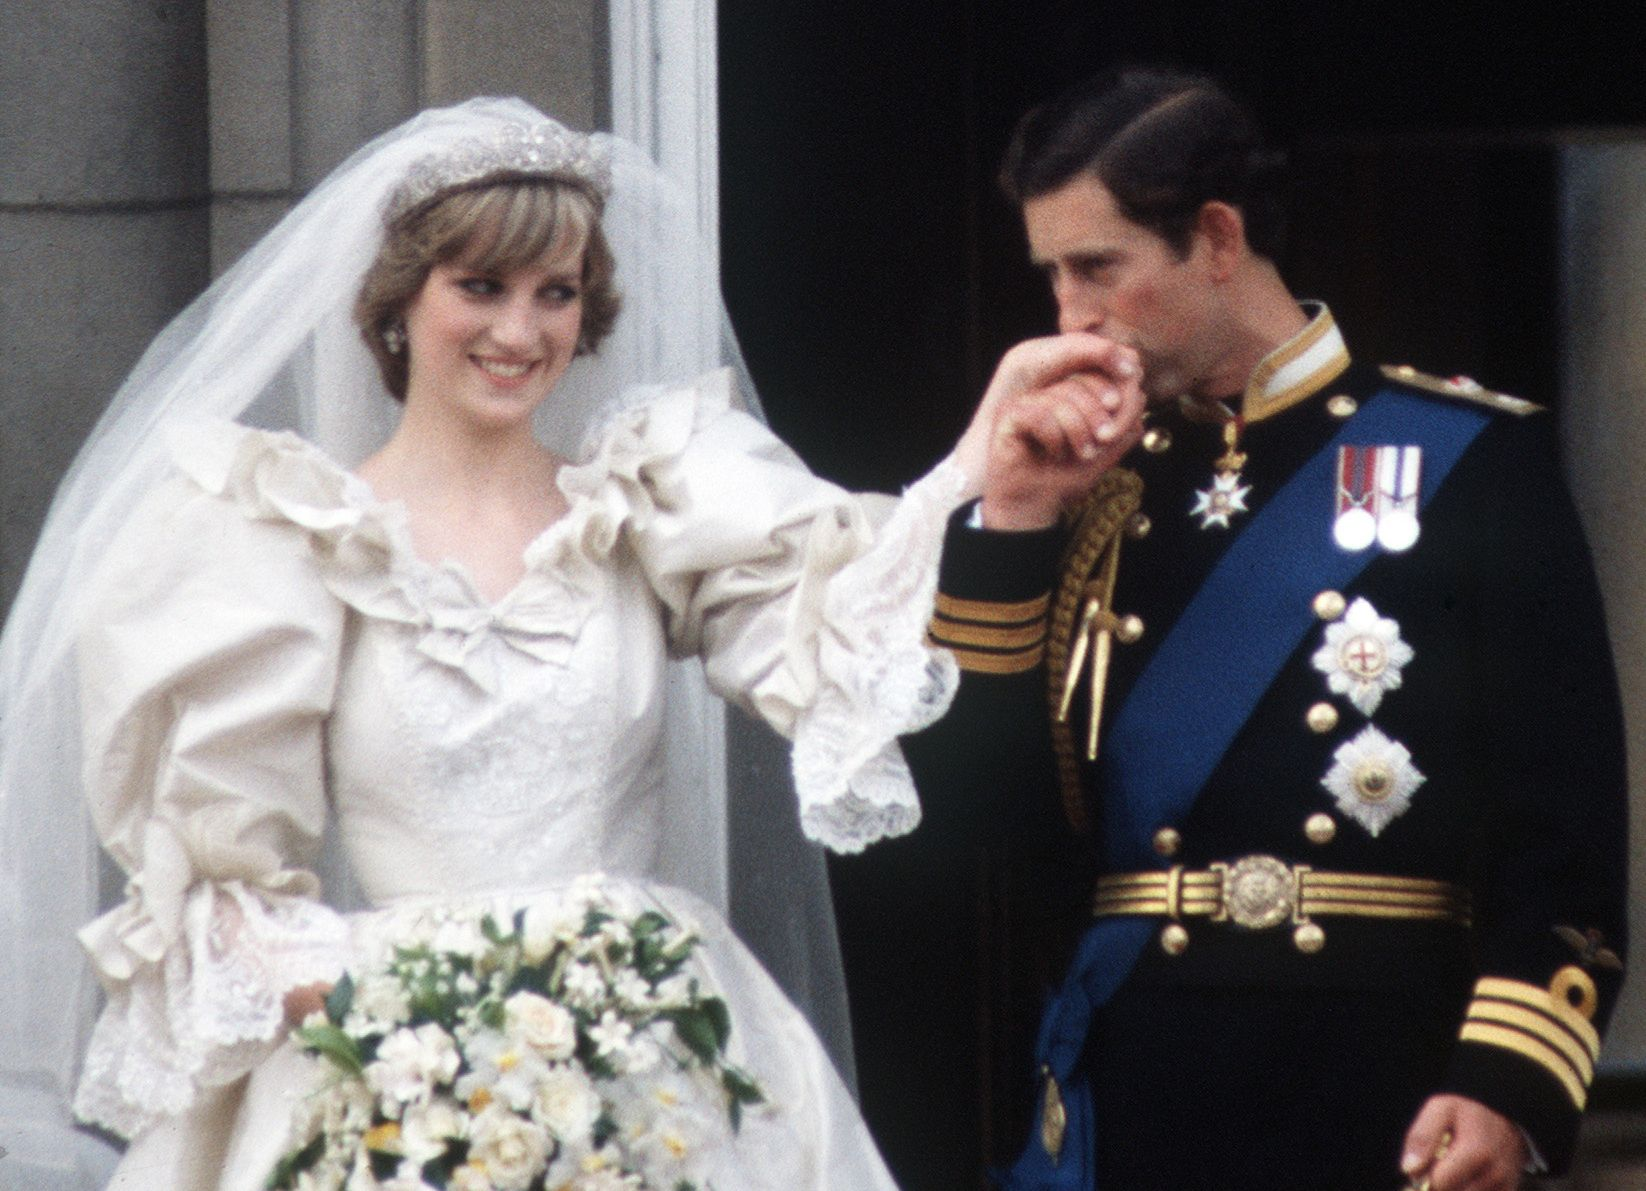 Prince Charles And Princess Diana Wedding Facts The Importance